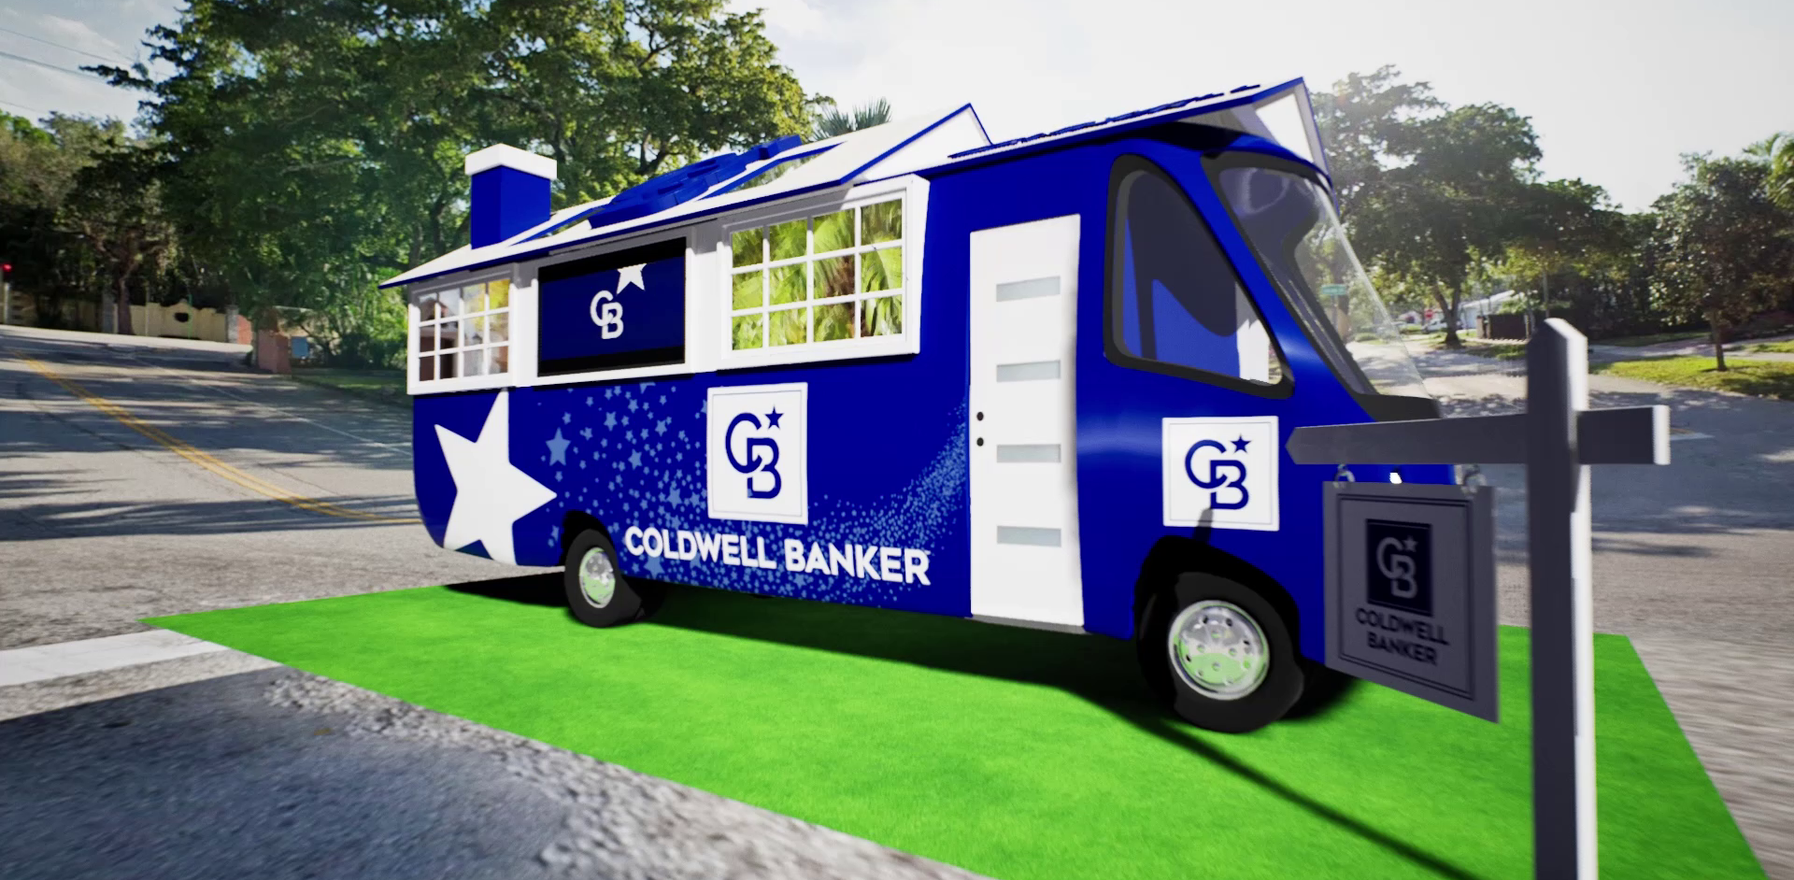 ColdWell banker egyption roadshow campaign